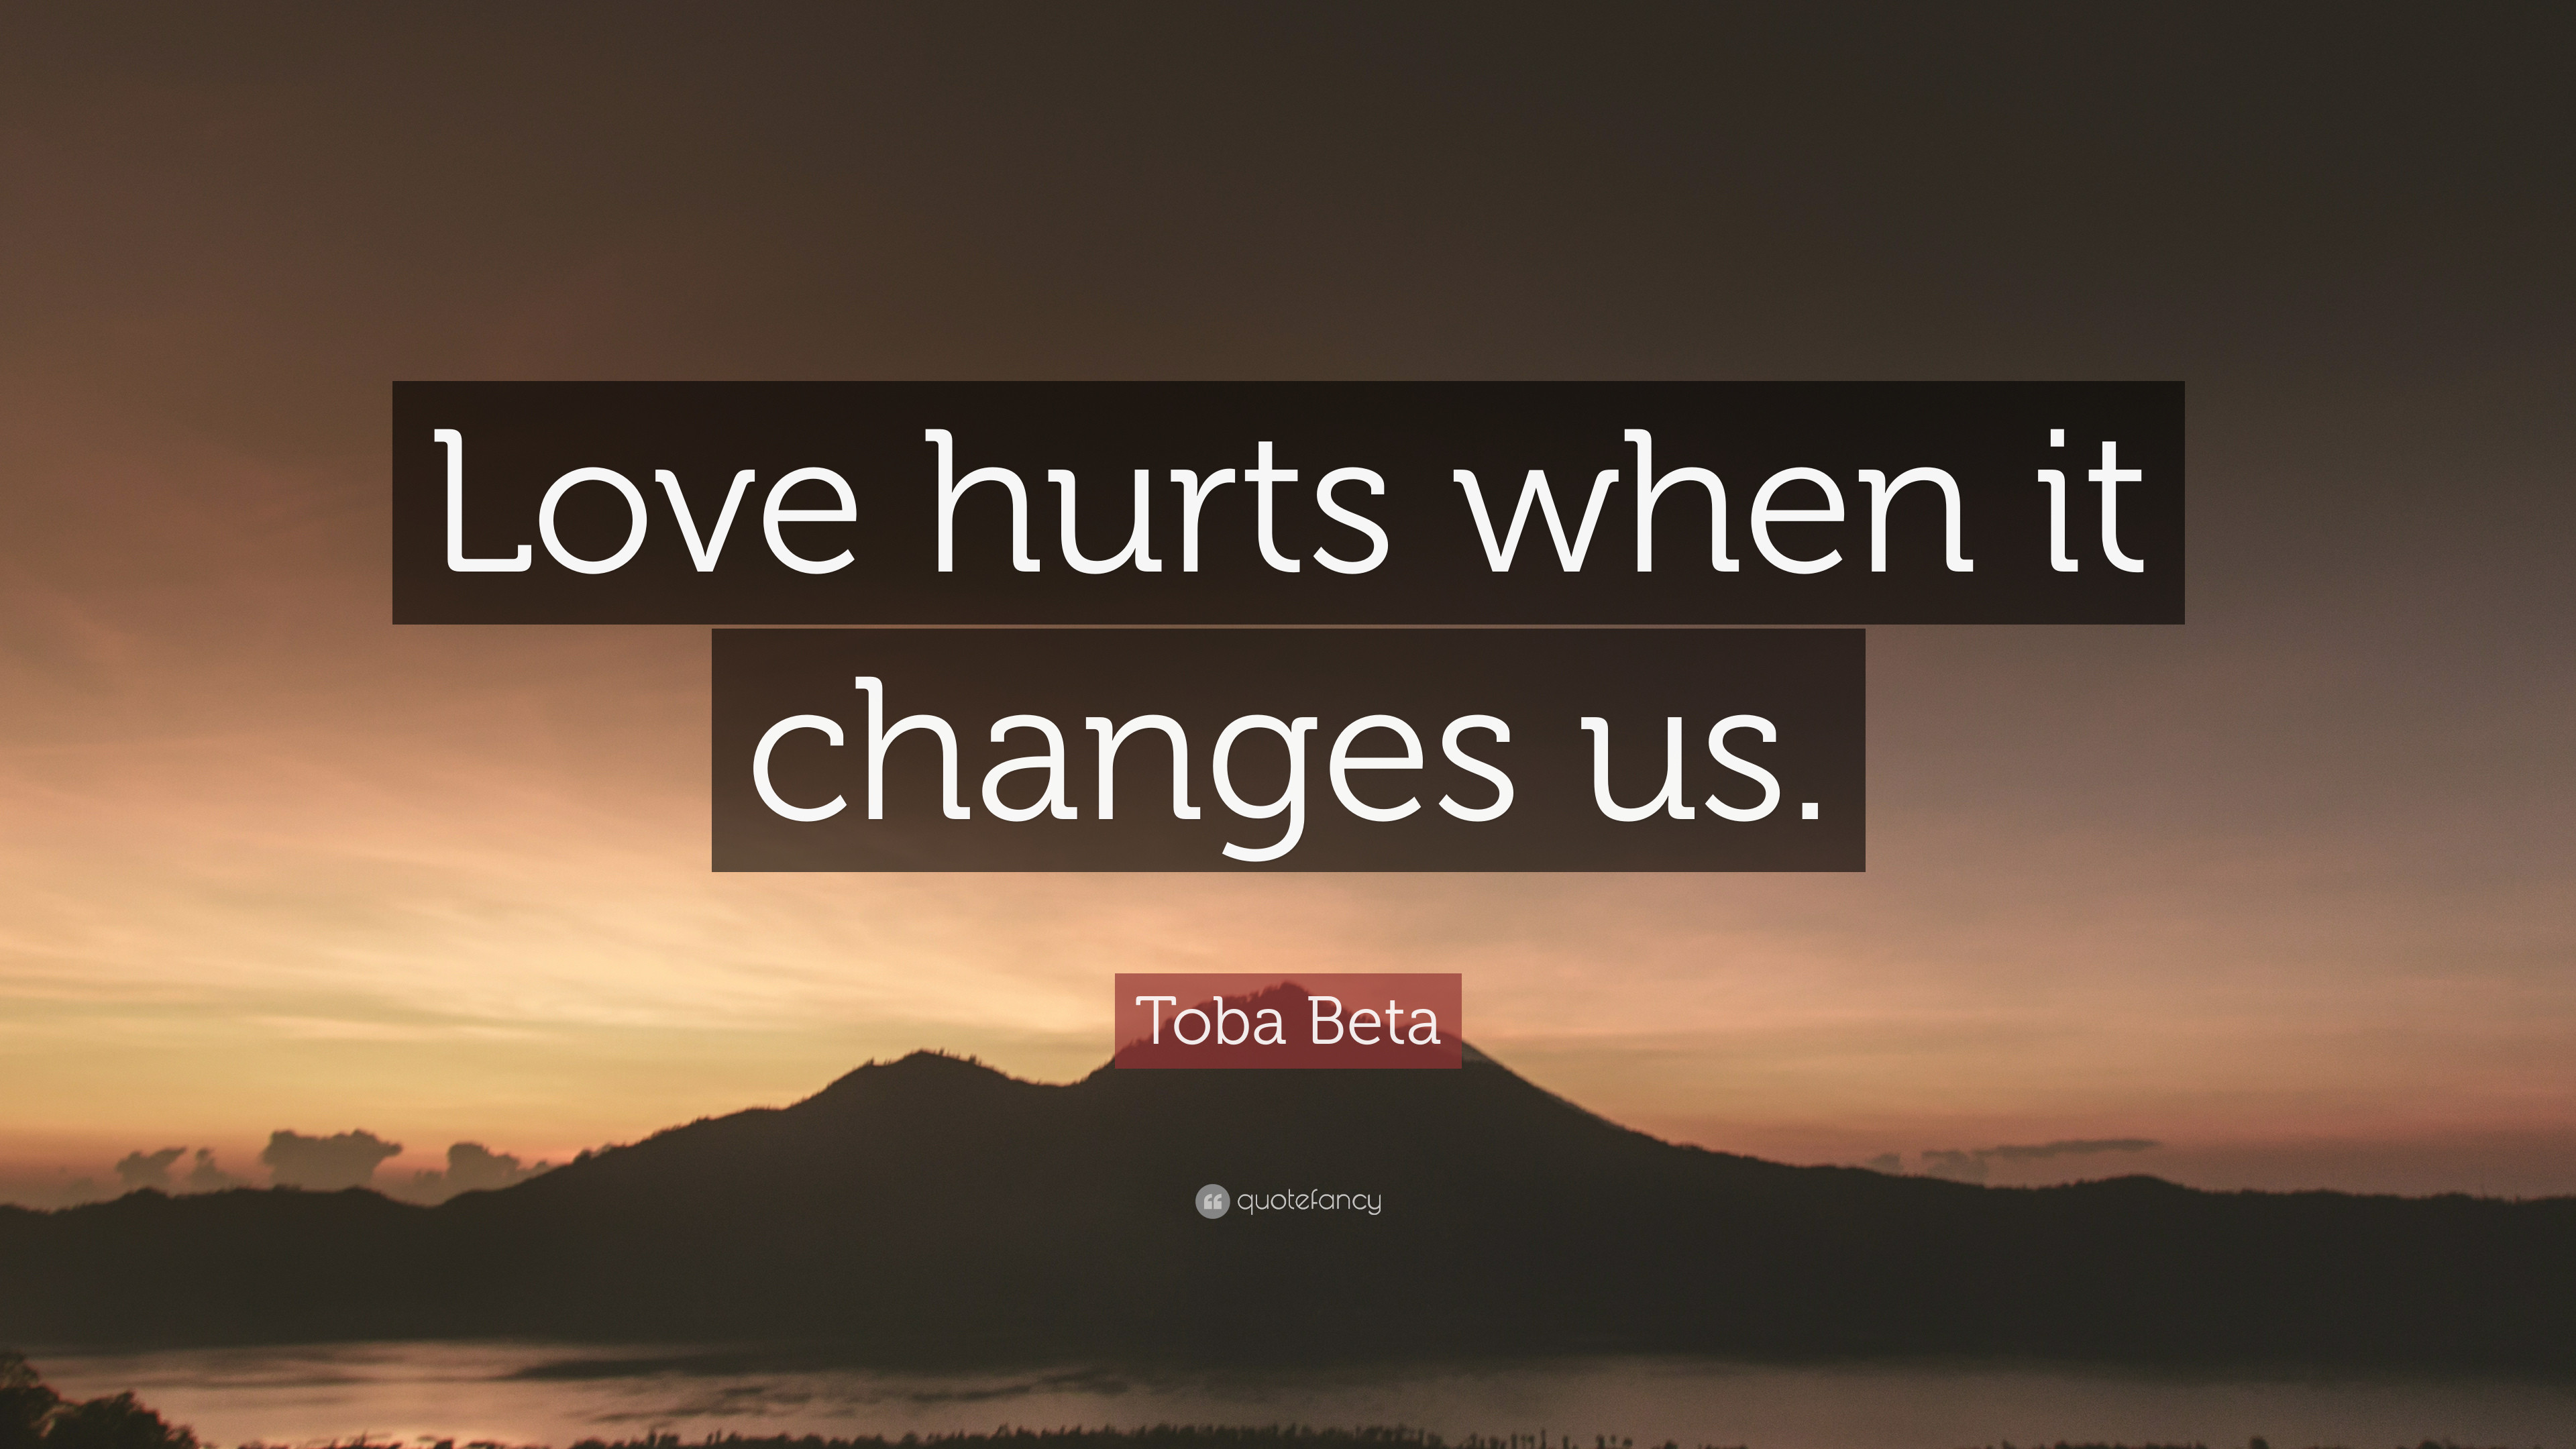 Unconditional Love Quotes Wallpapers Love Hurts Wallpapers With Quotes 68 Images